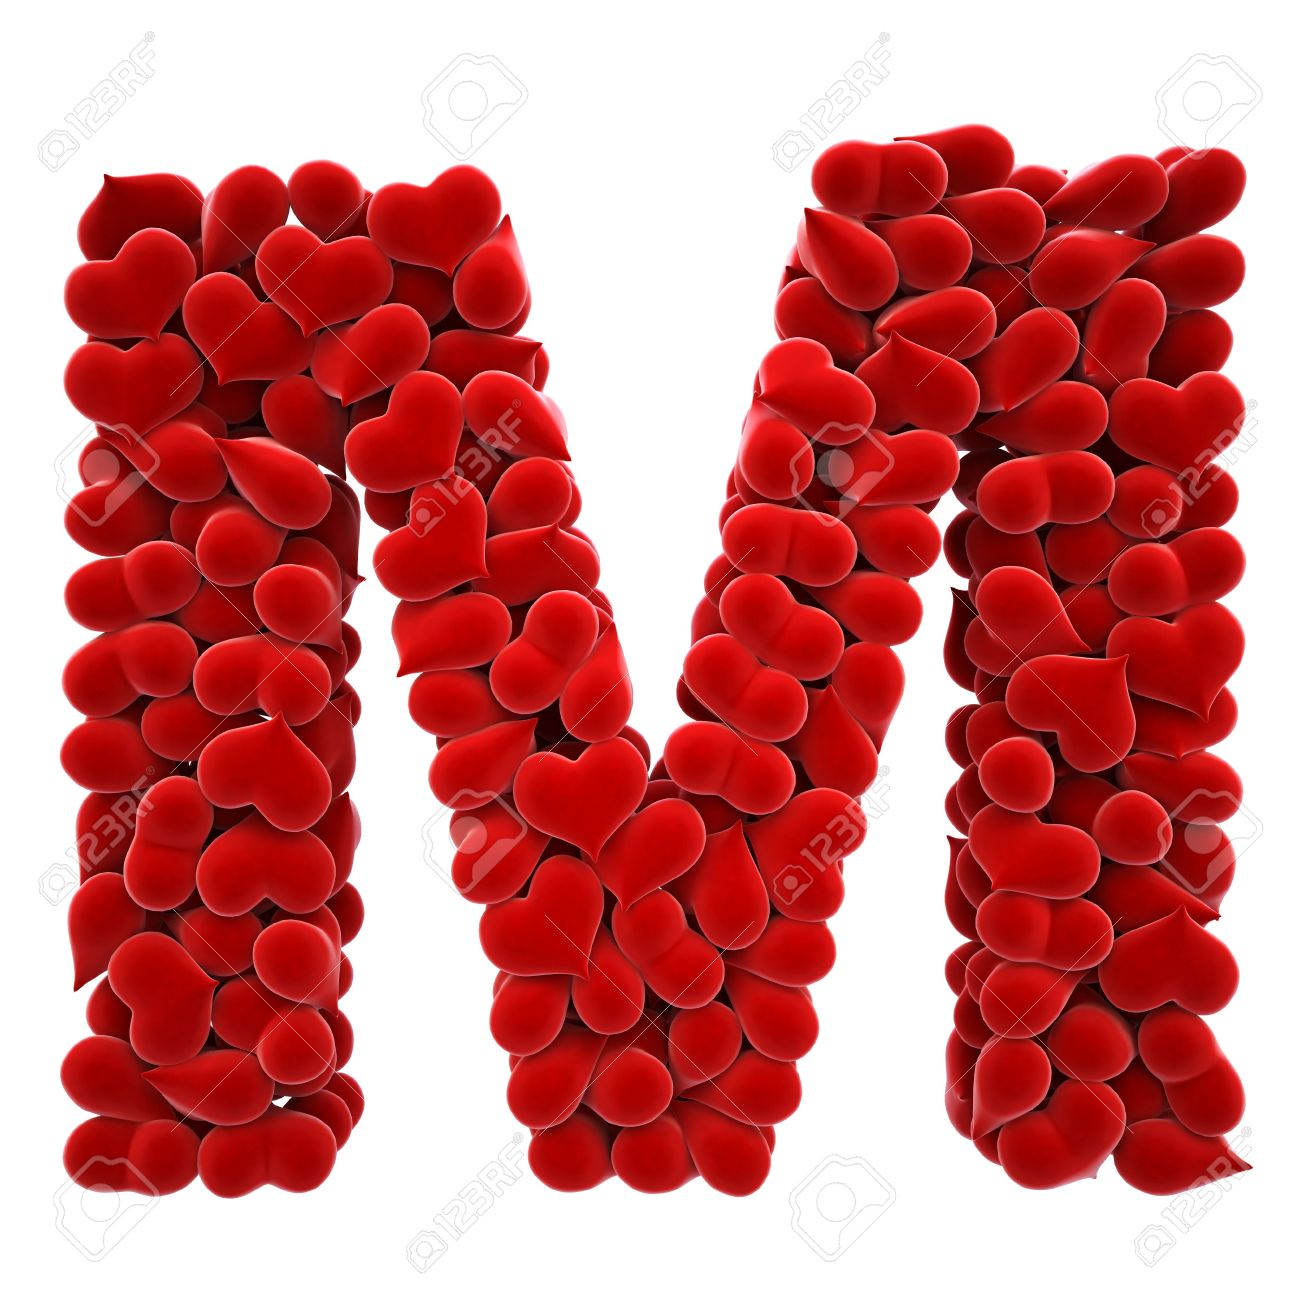 A Lot Of Hearts Velvet In The Form Letters Stock Photo